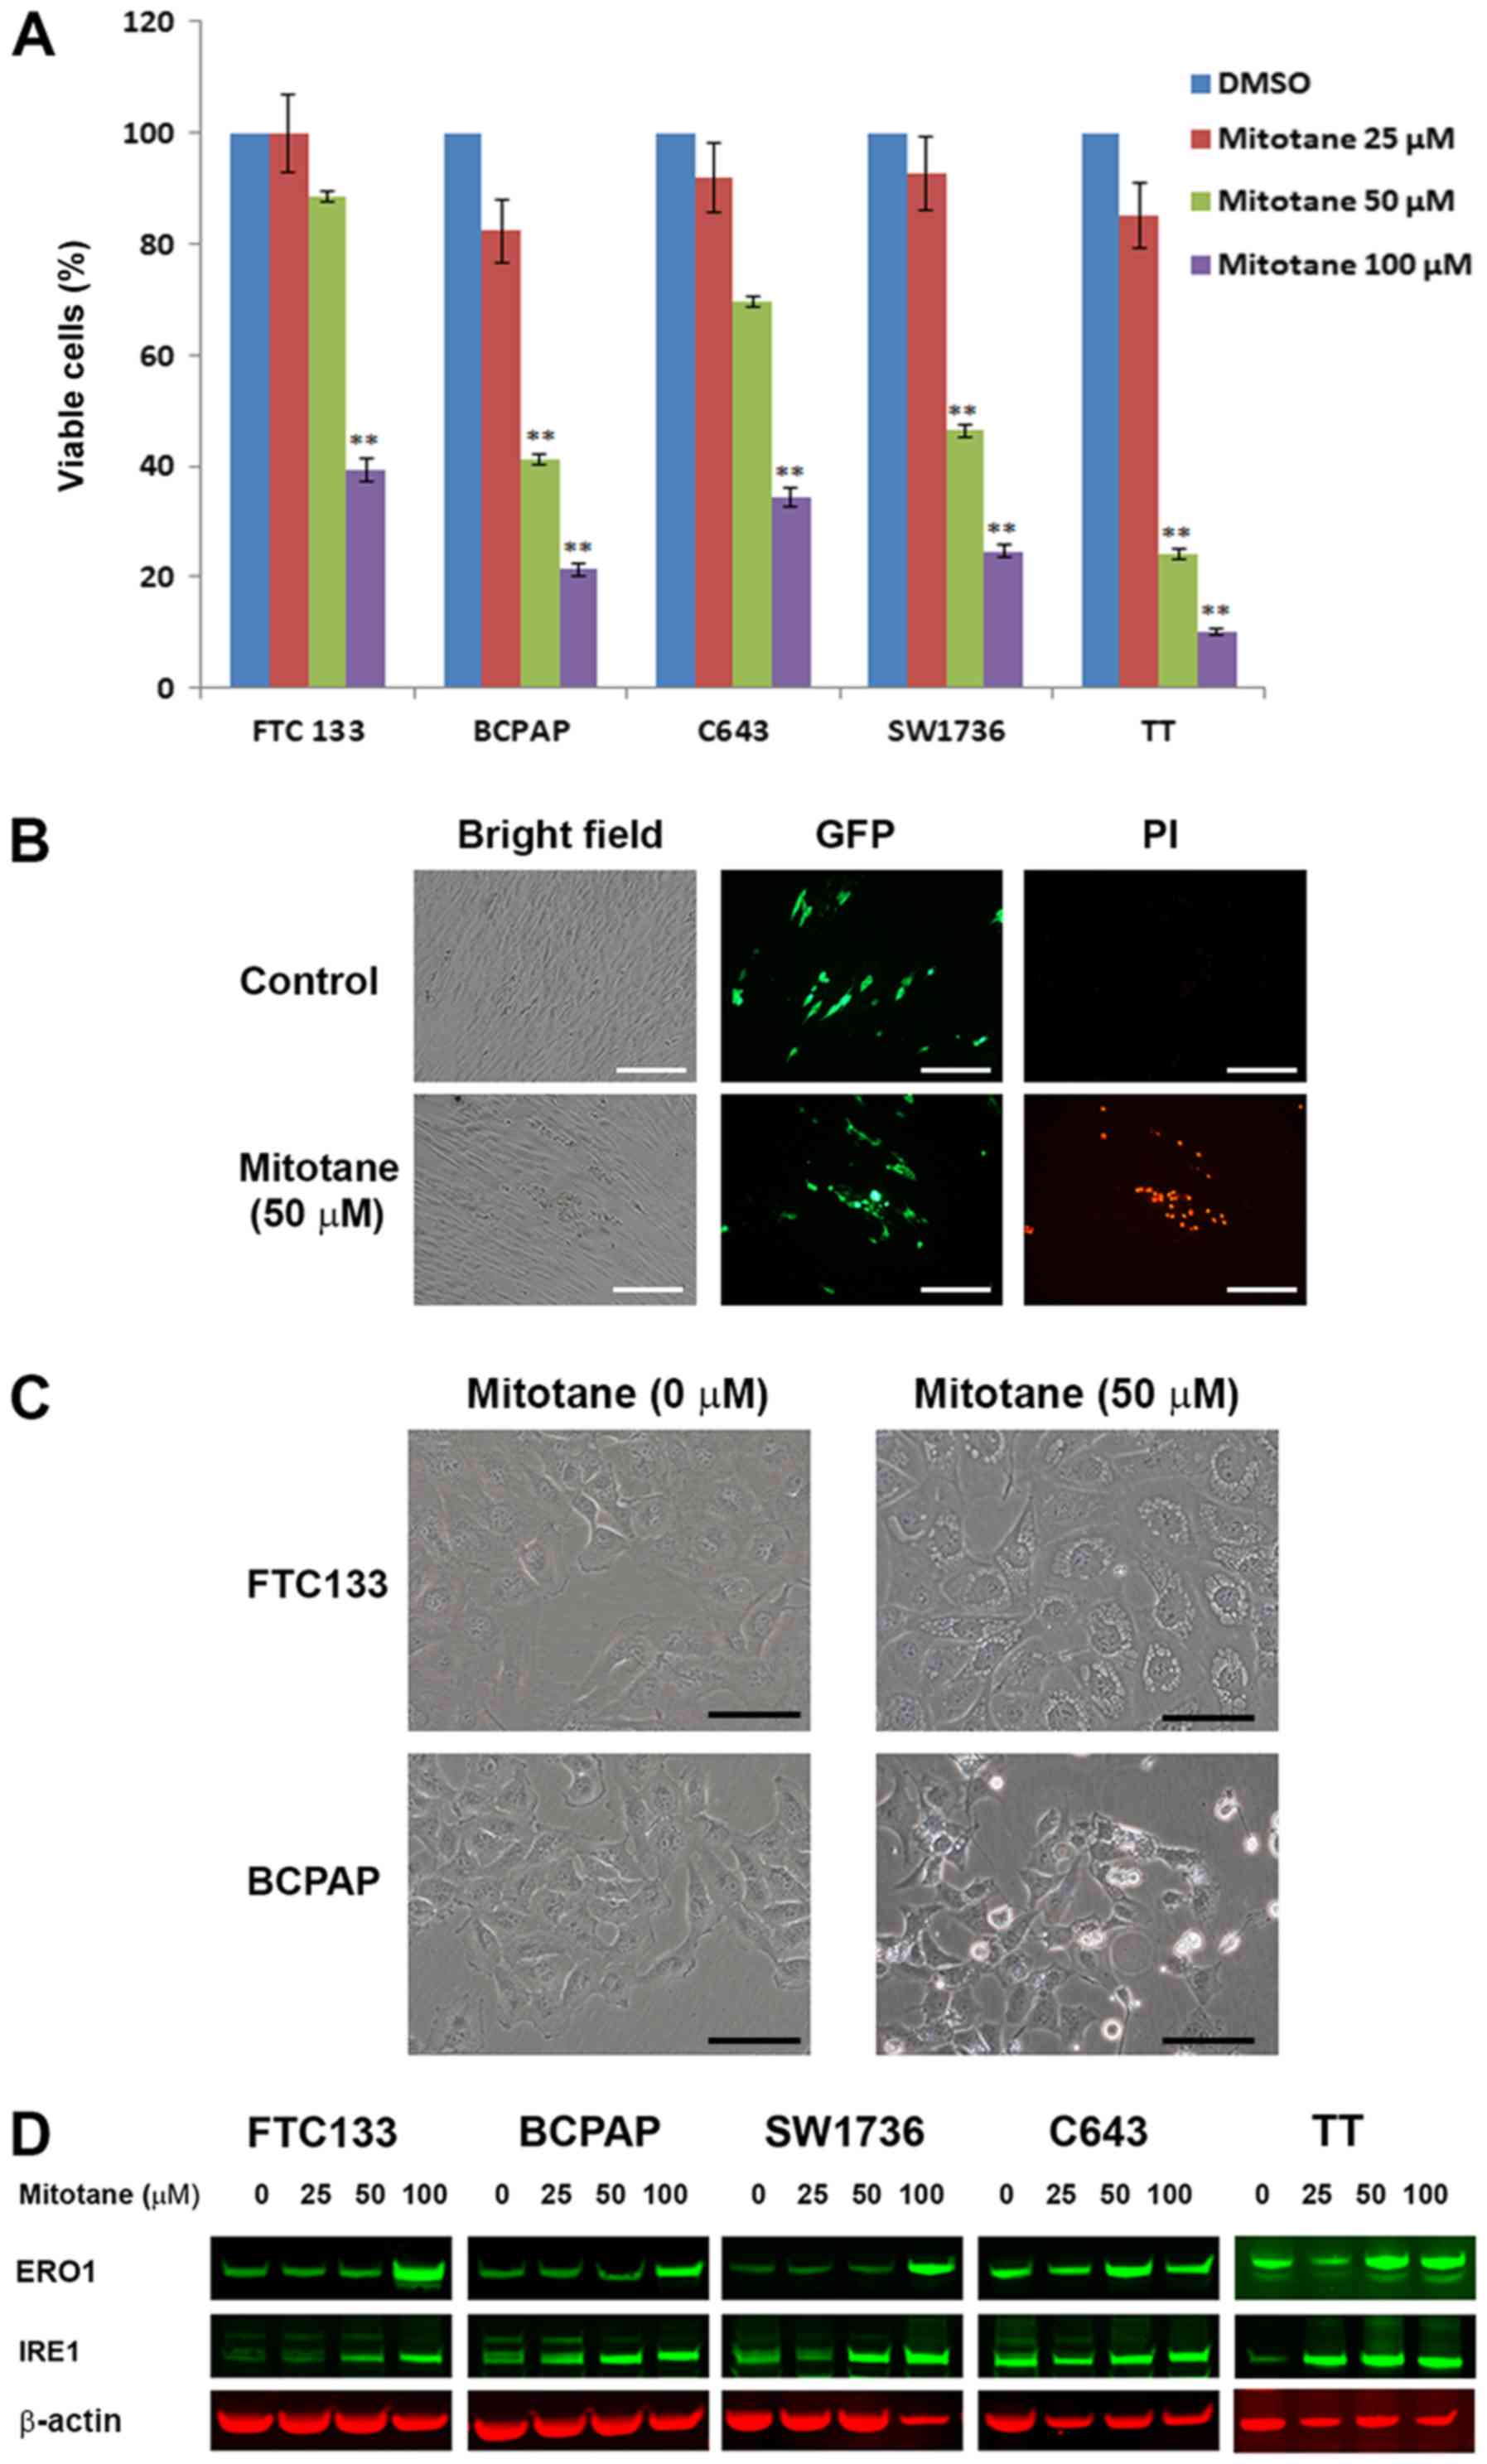 Mitotane induces mitochondrial membrane depolarization and